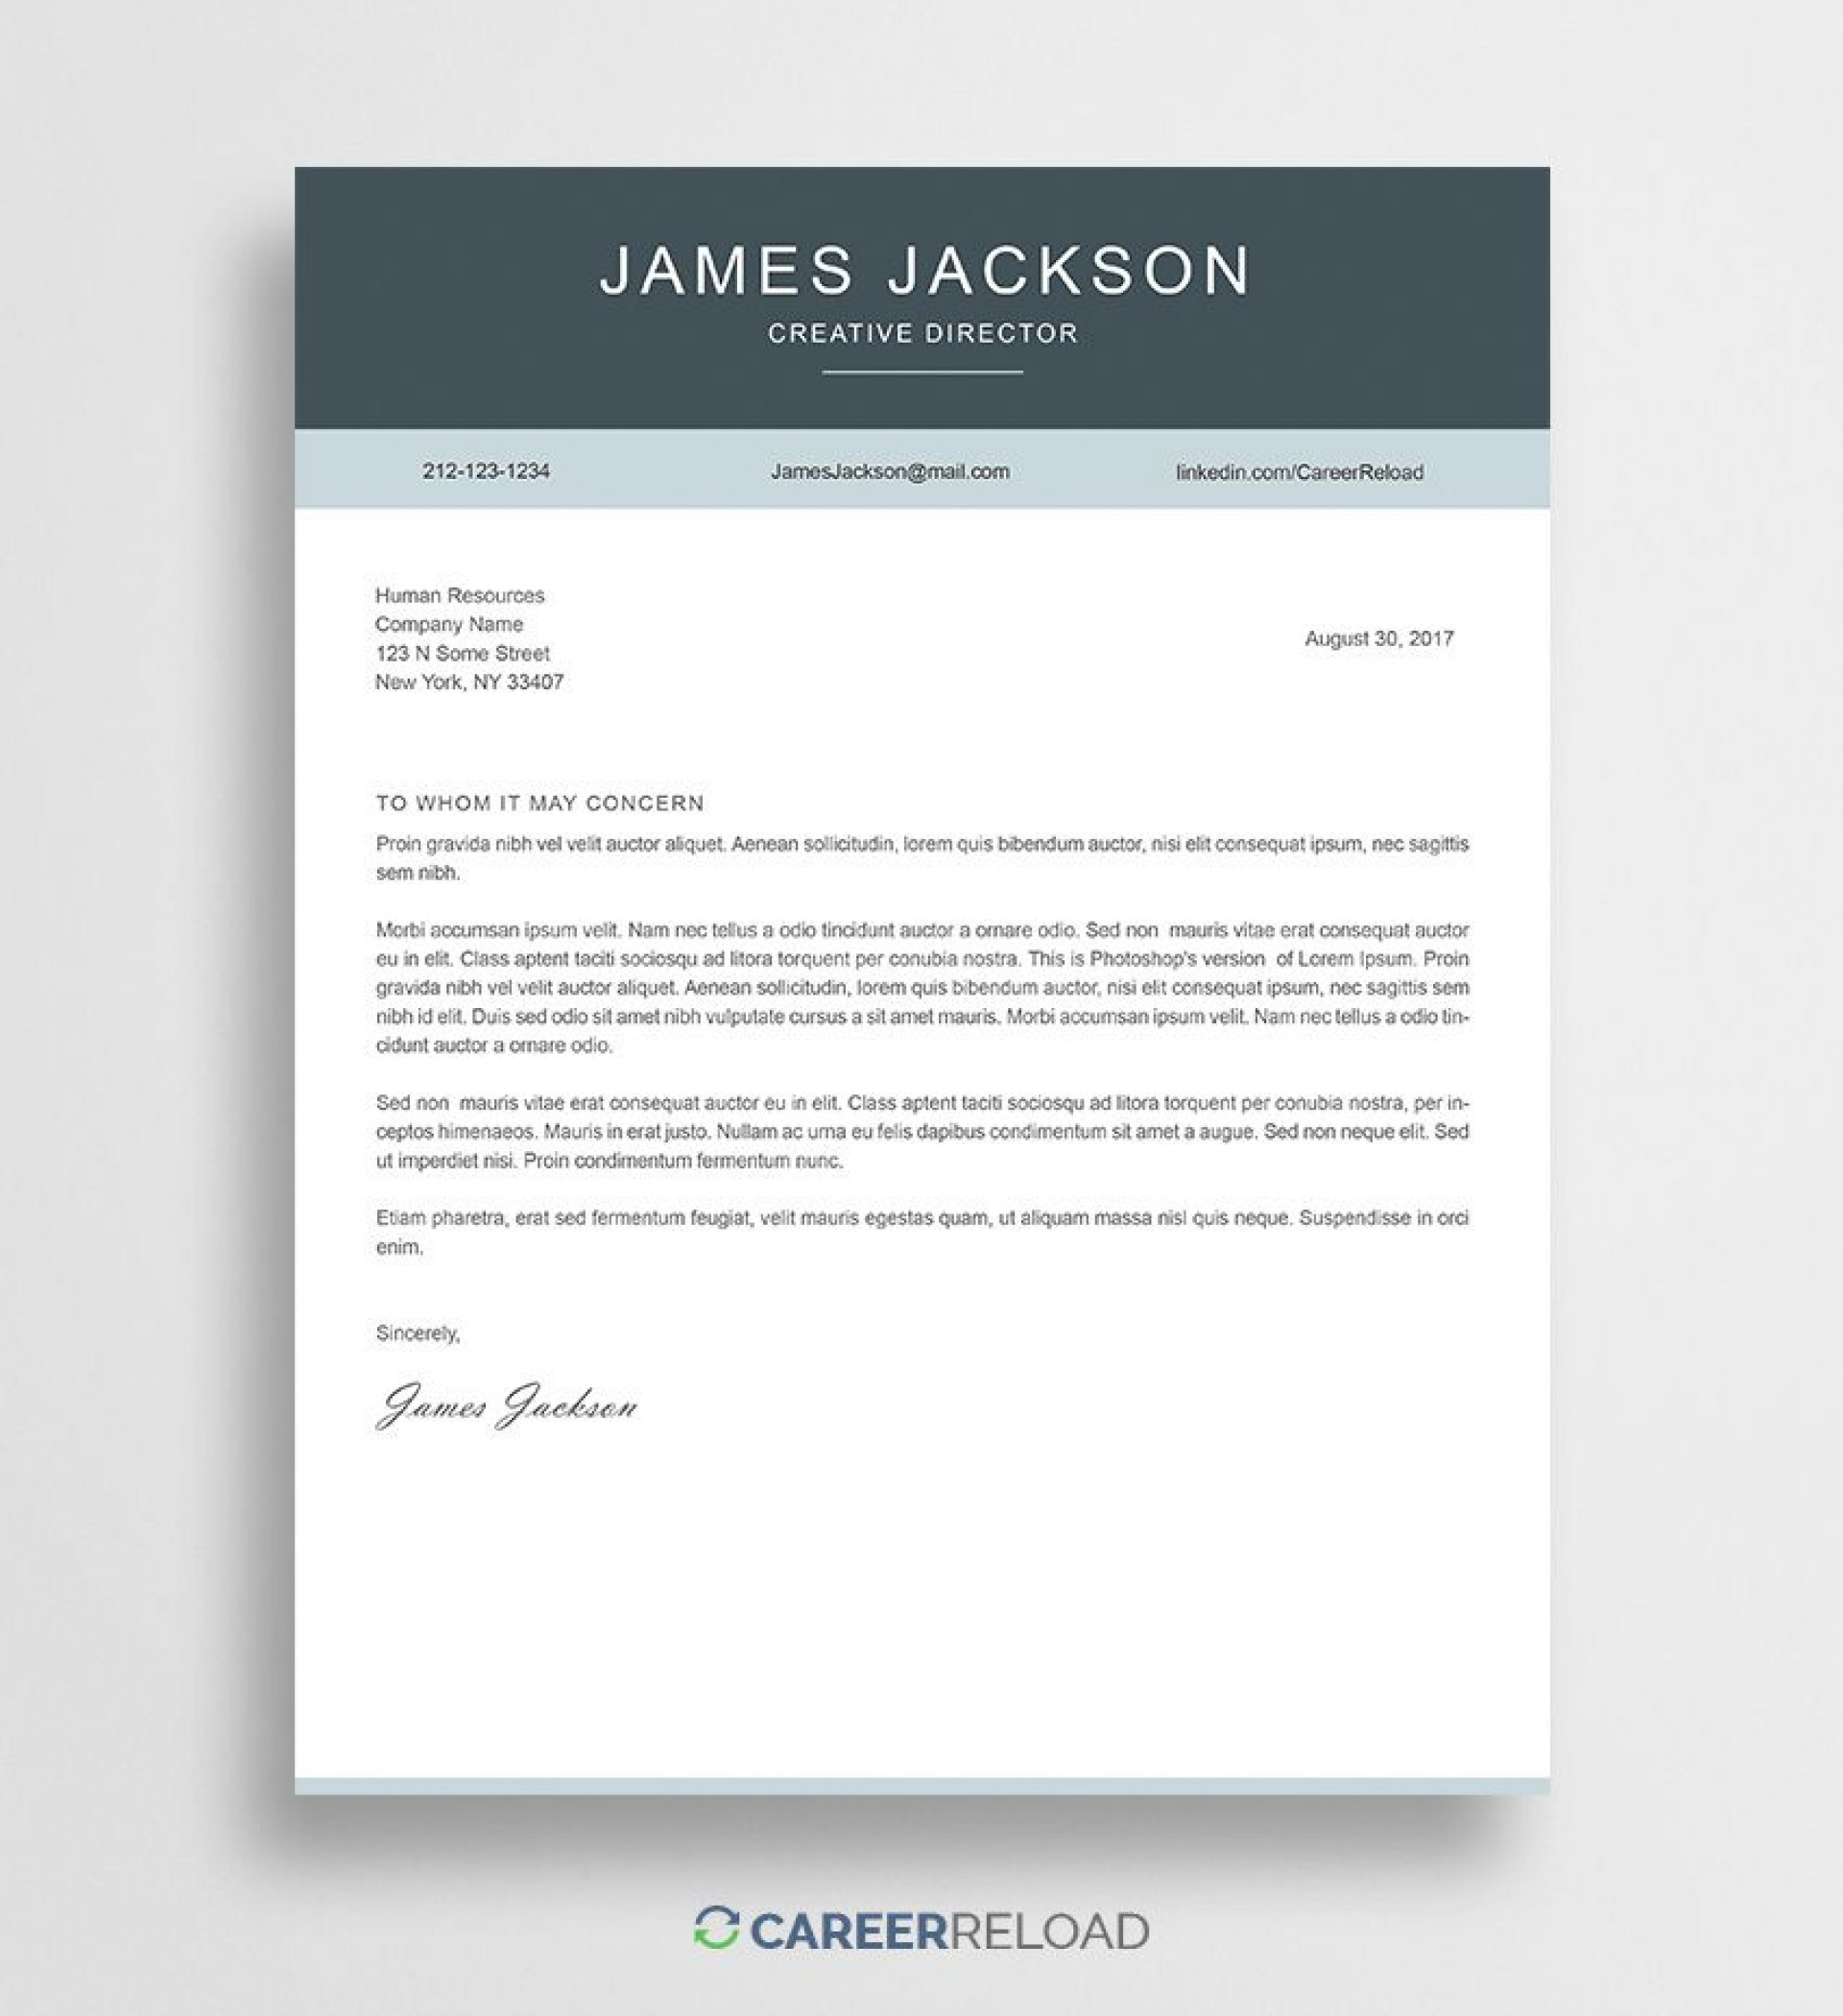 001 Marvelou Downloadable Cover Letter Template Highest Clarity  Printable Free Fax Microsoft1920